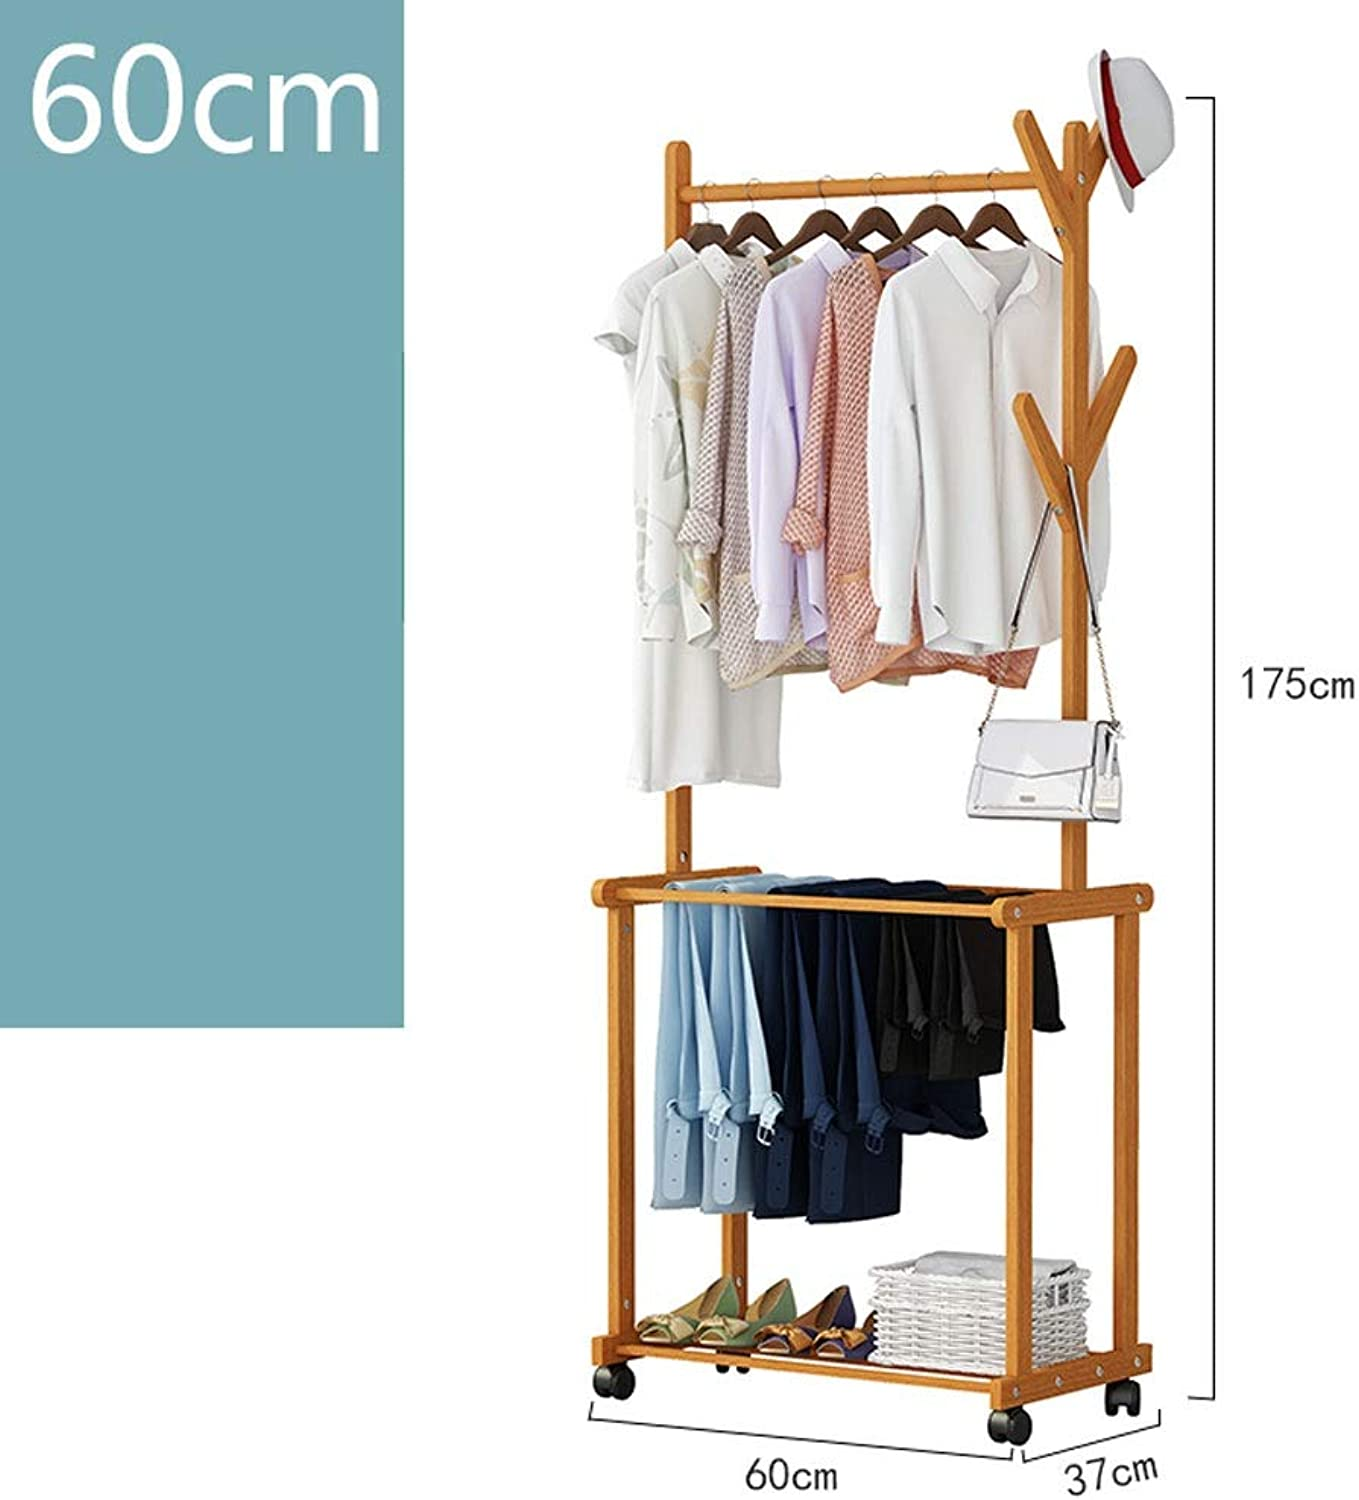 SXCVBN Coat Rack, Coat Rack - Creative Living Room Hanger - Nan Bamboo Floor Clothes Shelf - Bedroom Mobile Storage Rack -Hat and Coat Stand Hall shoes Rack Umbrella Bag Stand with Removable 176CM